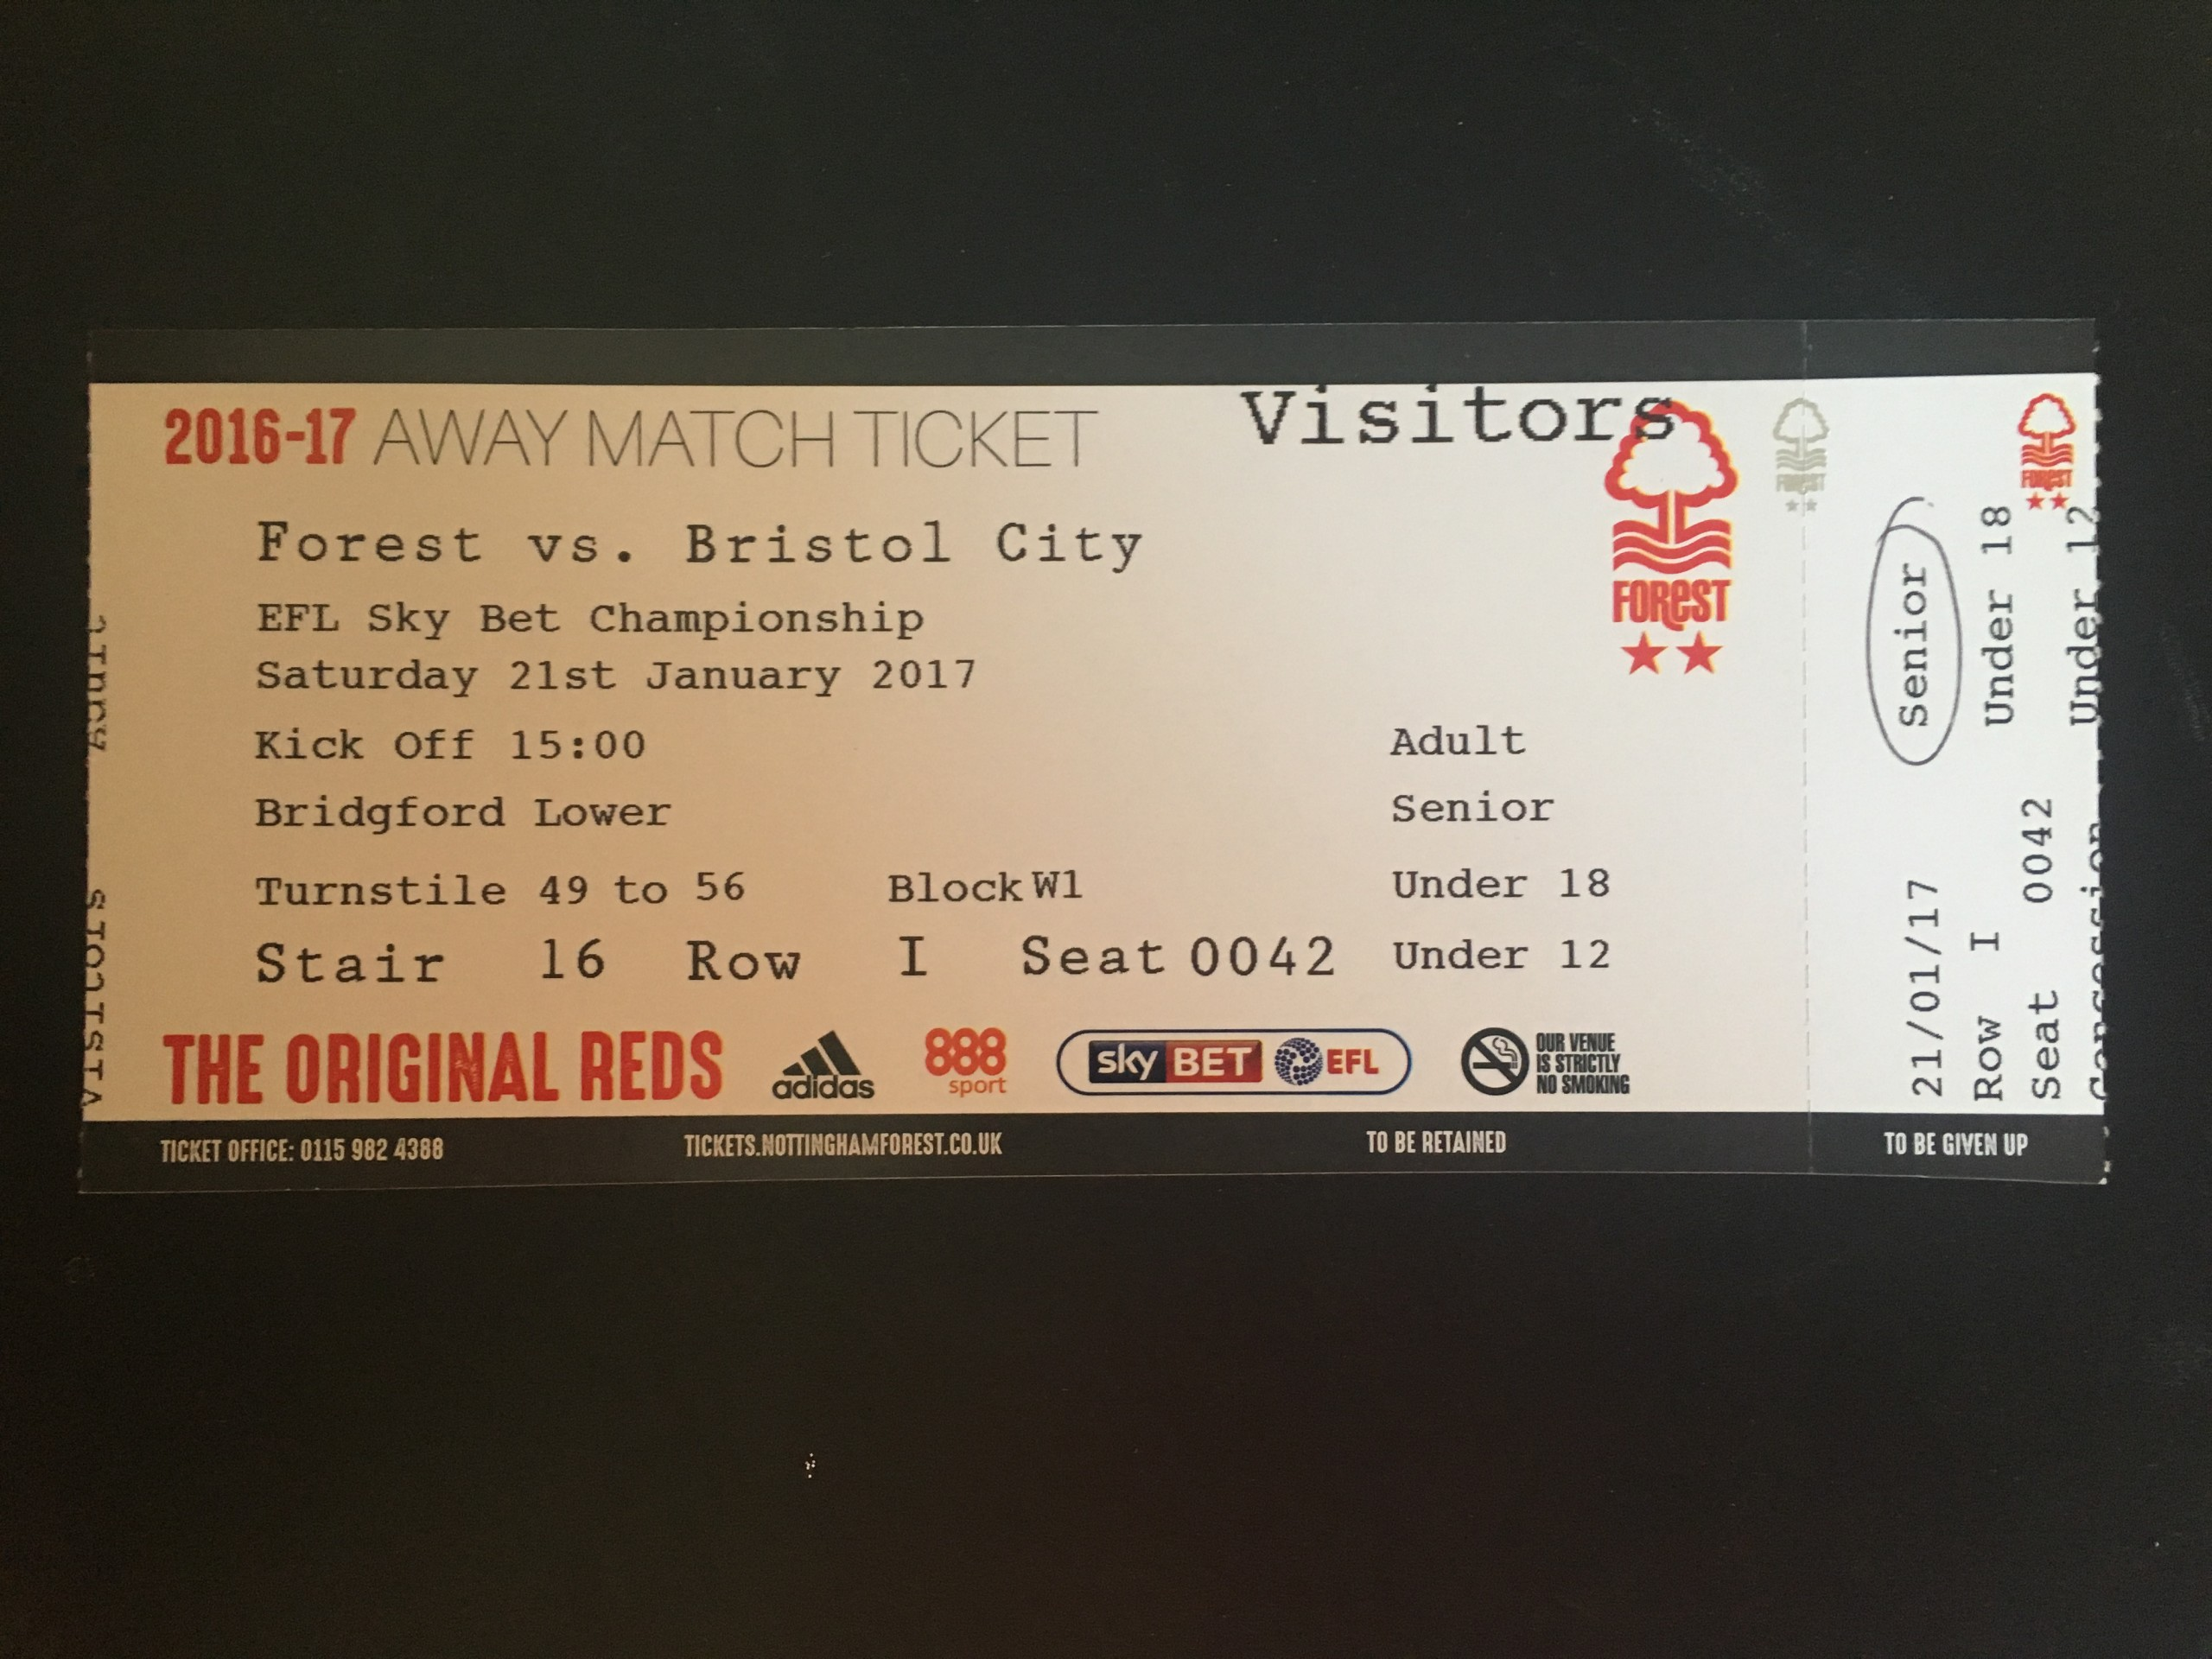 Nottingham Forest v Bristol City 21-01-17 Ticket